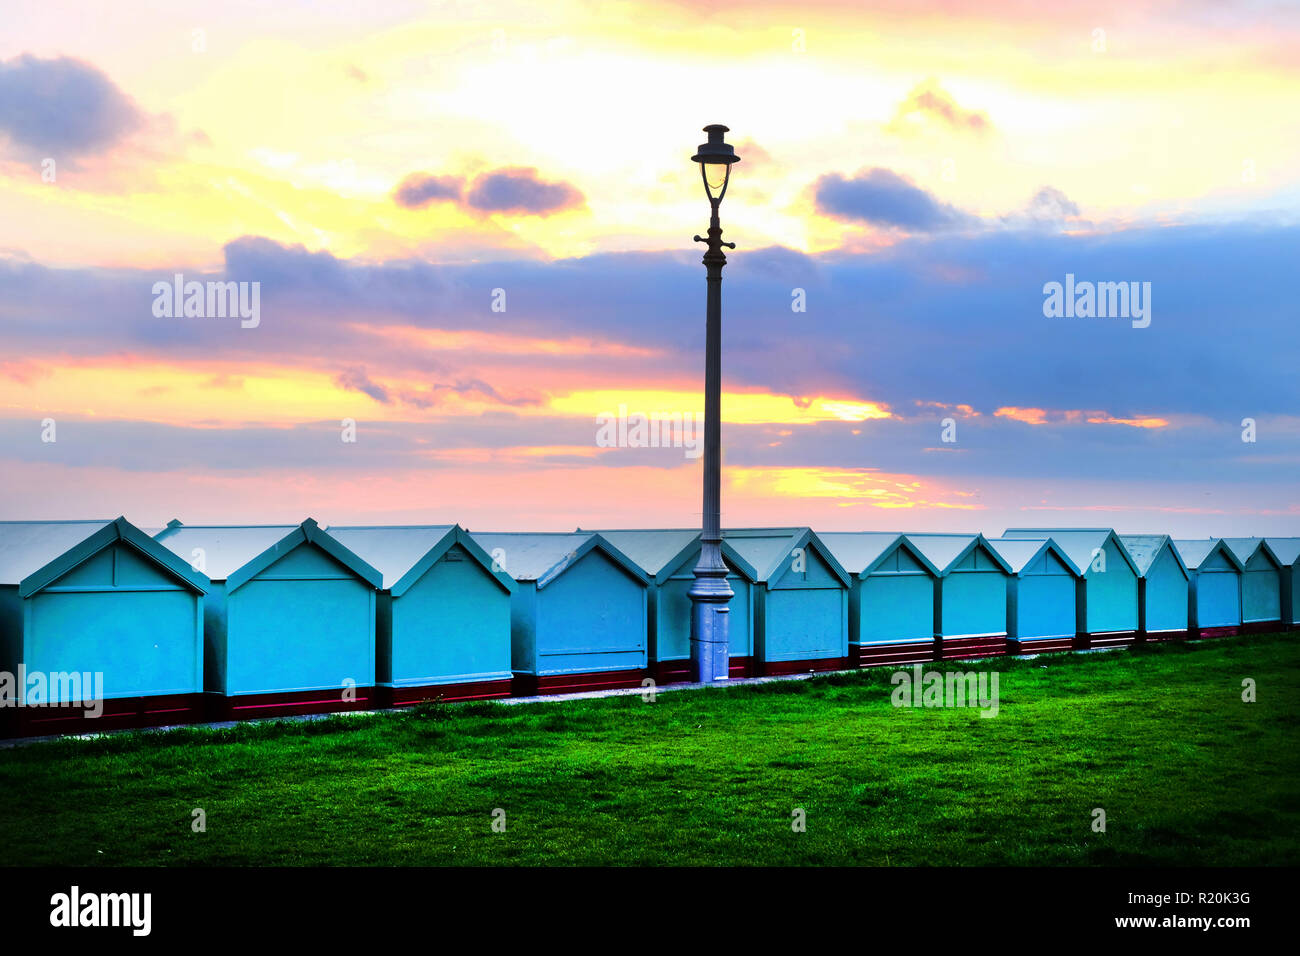 Brighton seafront a line thirteen beach huts, with a victorian street lamp in the middle the sun is setting and the sky is glowing yellow, red, and or Stock Photo